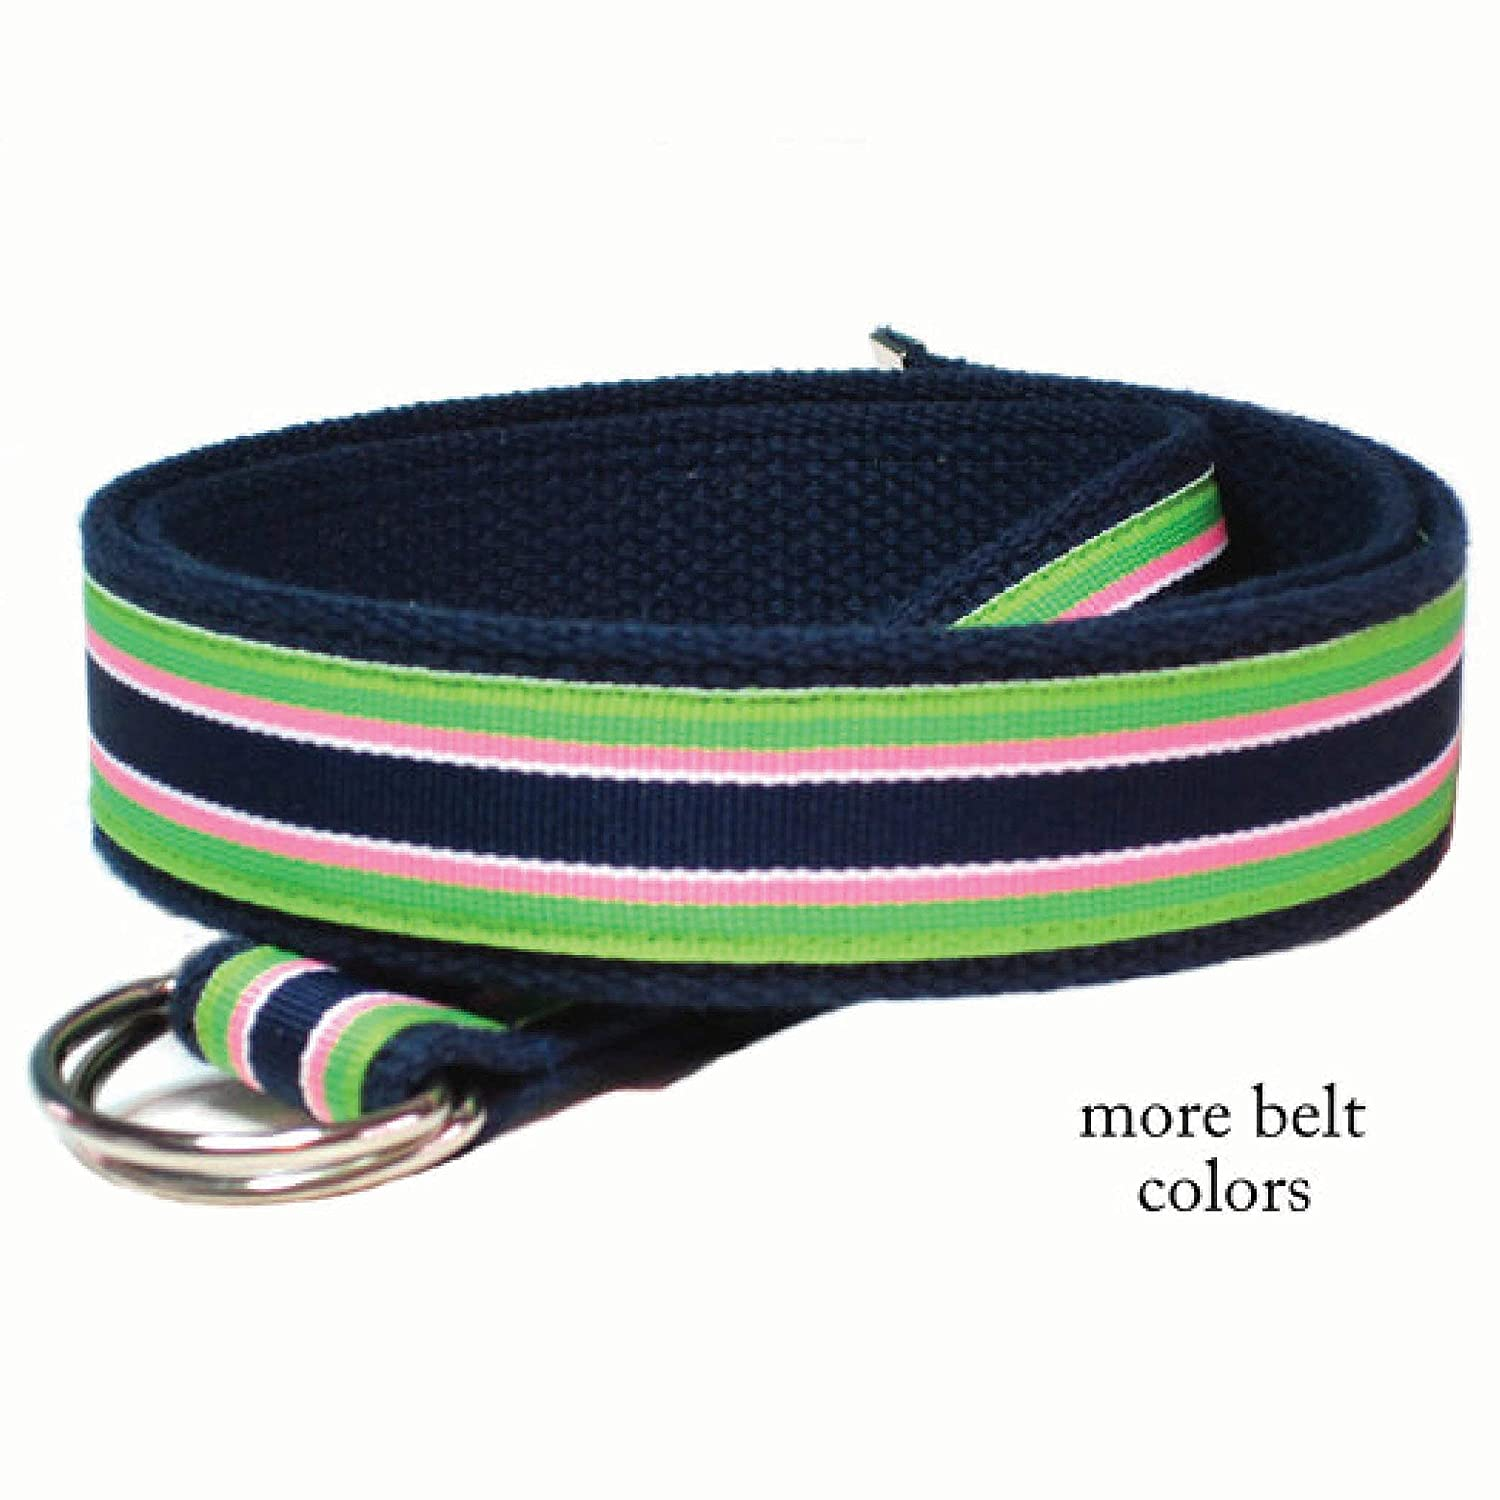 Mens Belt/Canvas Belt Green Pink Navy Striped Belt/Gifts for Men/D-ring Belt Ribbon Belt - Bahama Breeze in sizes XS to Big and Tall Man Belt (Bahama Breeze)